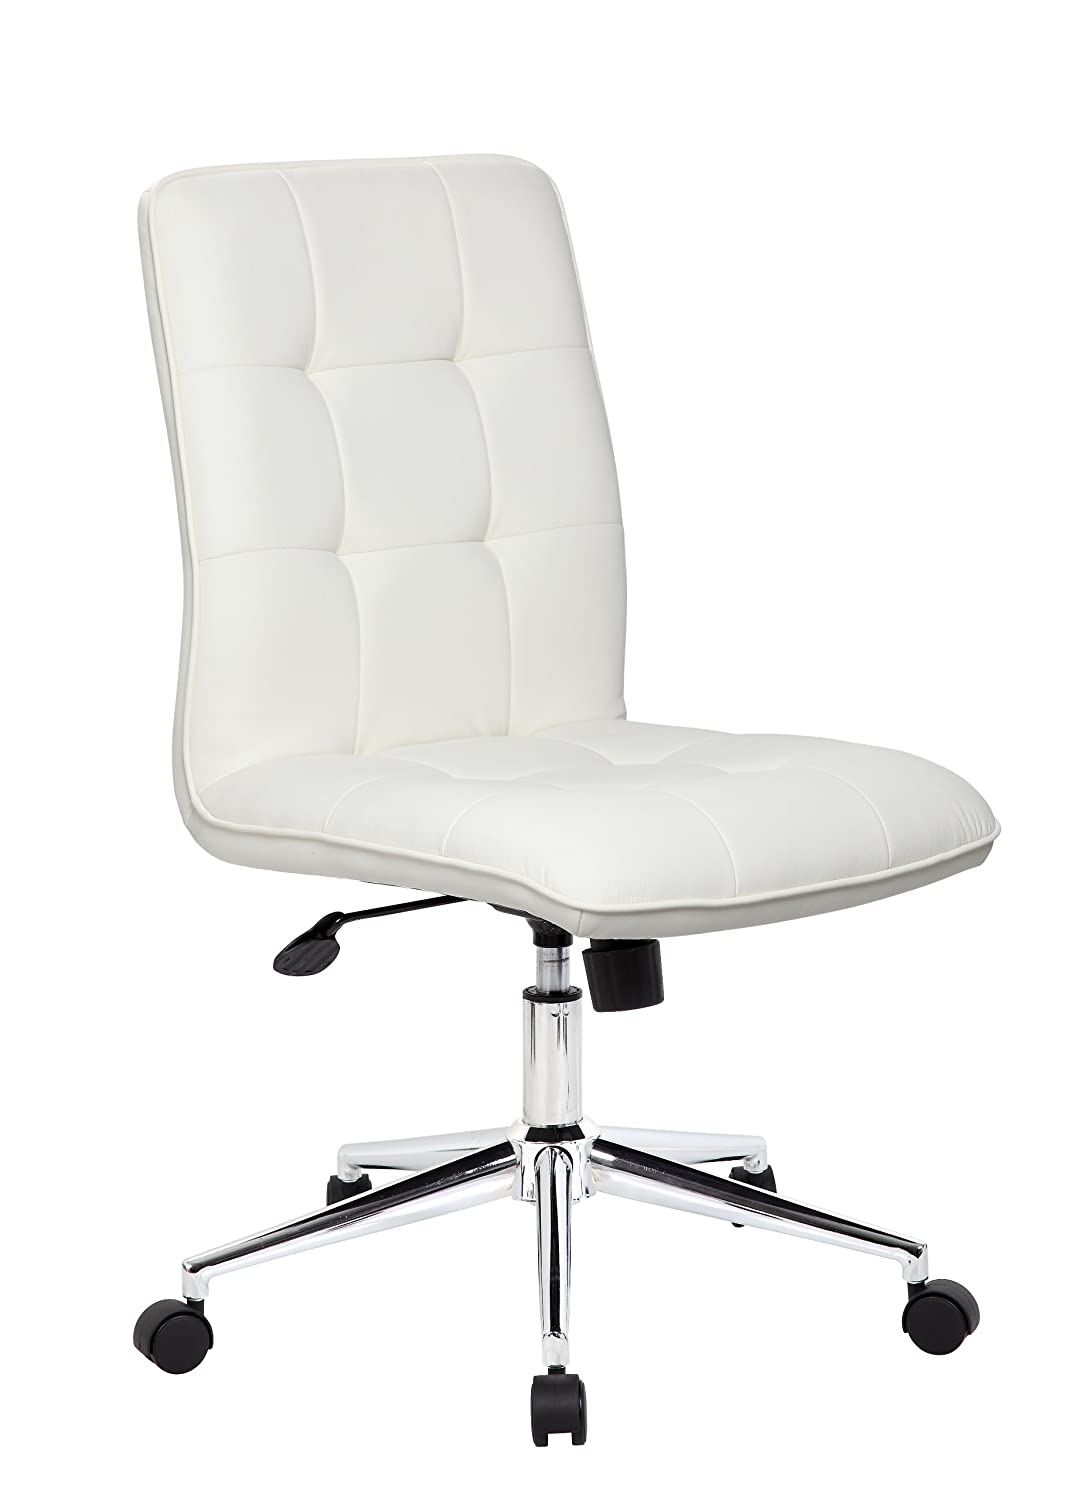 Boss Office Products B330-WT Mellennial Modern Home Office Chair without Arms in White